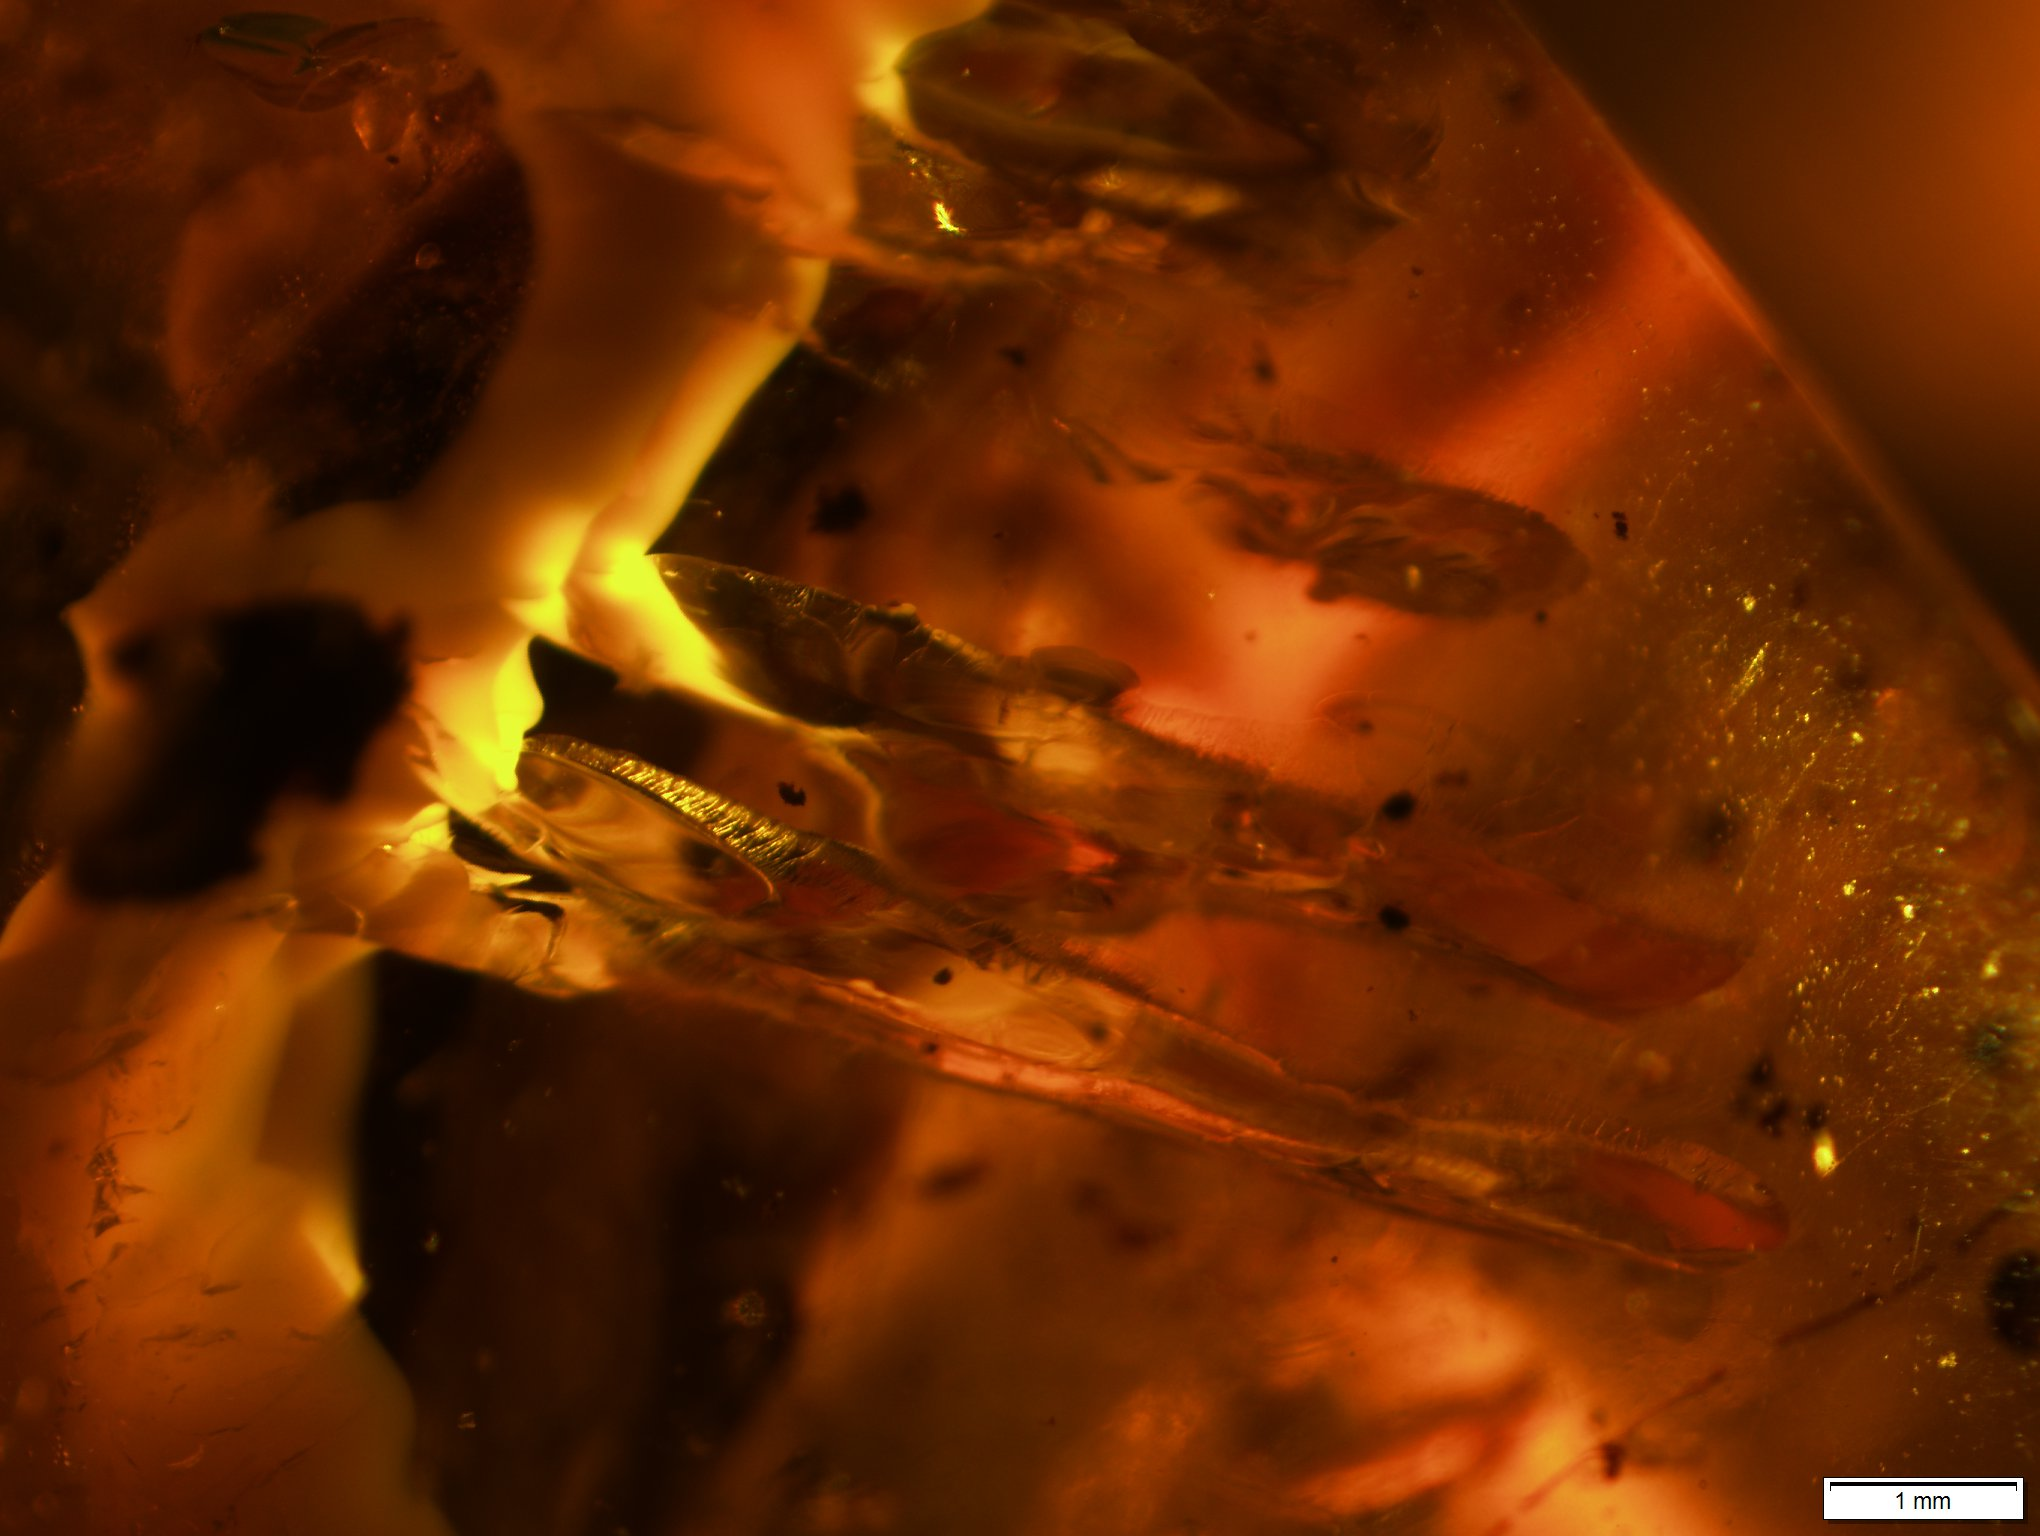 pterosaur teeth in amber